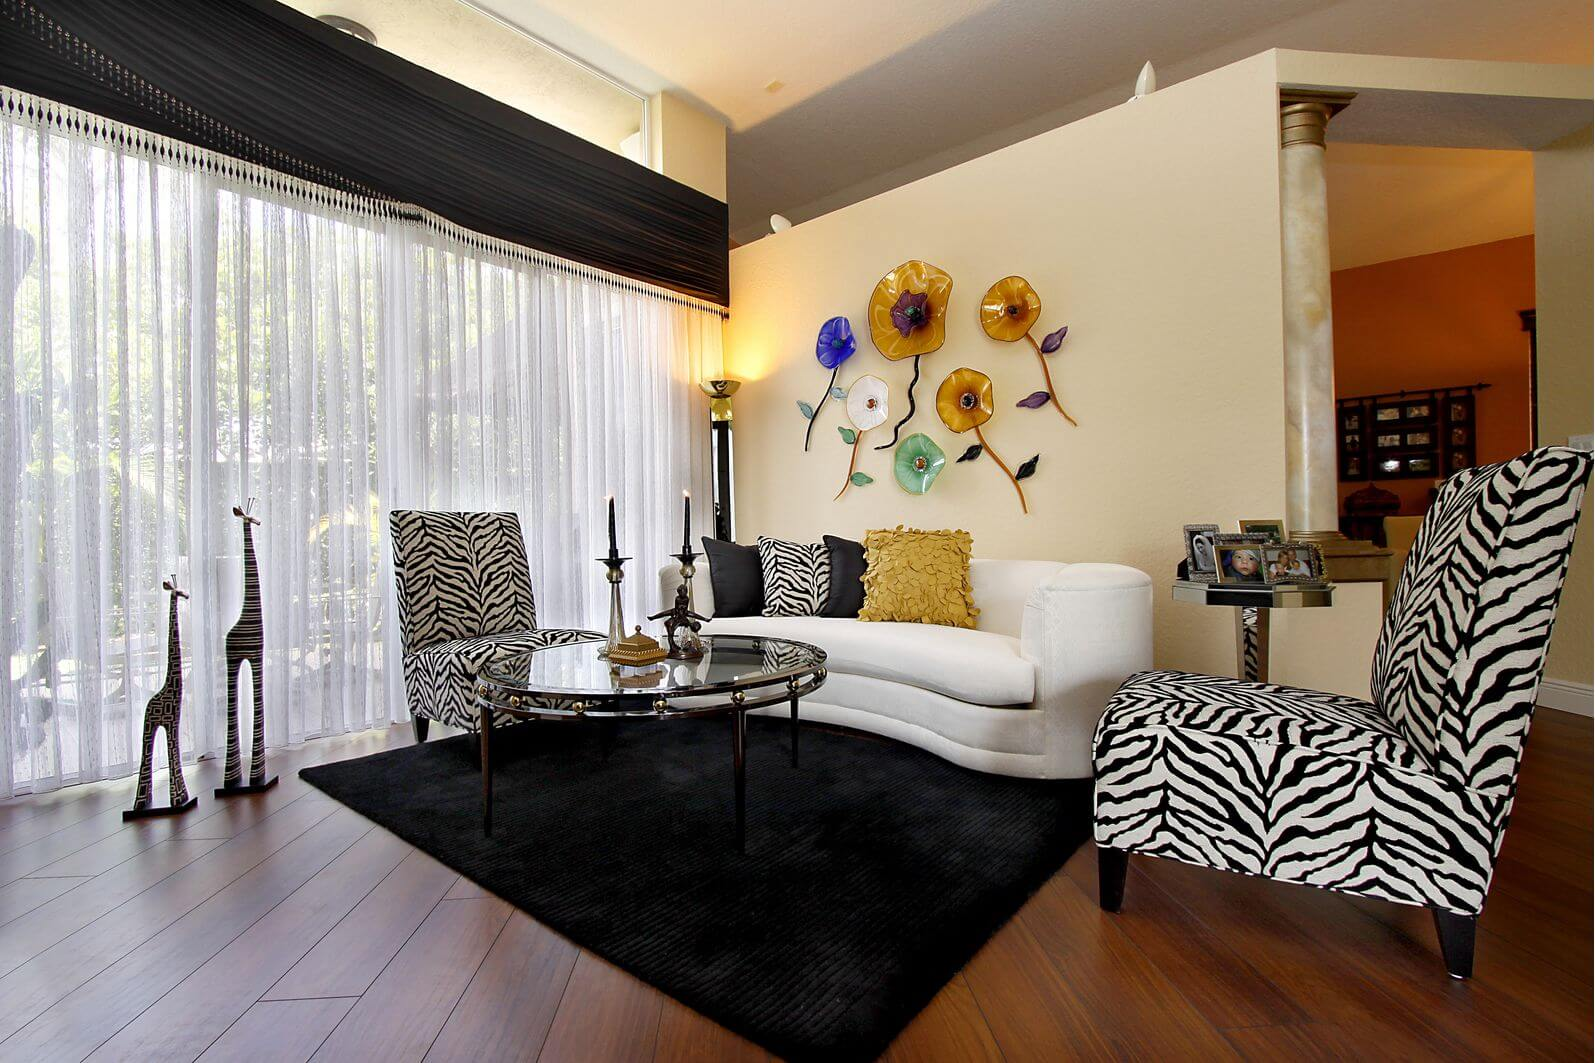 Small Living Room With 2 Zebra Print Armless Chairs, One Small White Sofa,  Glass